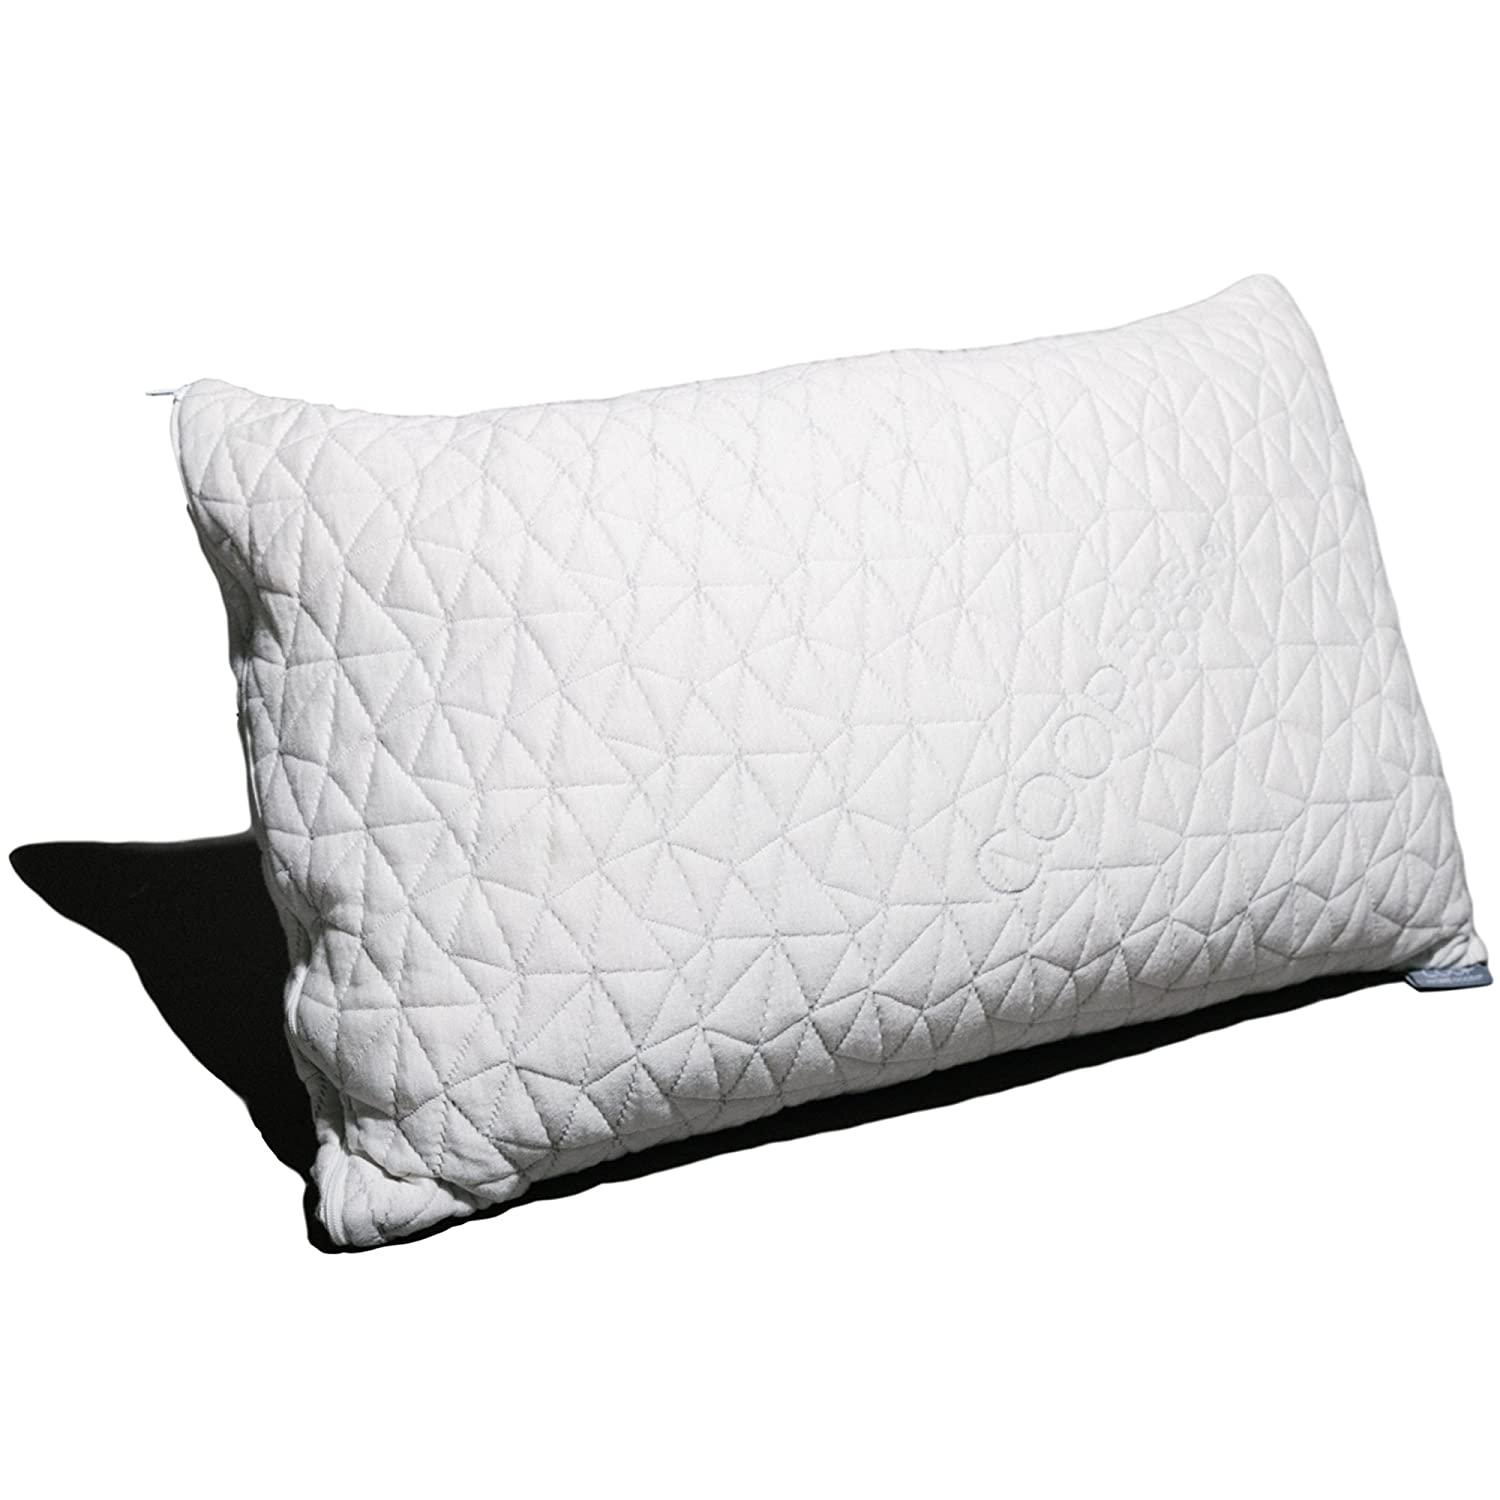 Coop Home Goods Pillow Black Friday Deal 2020